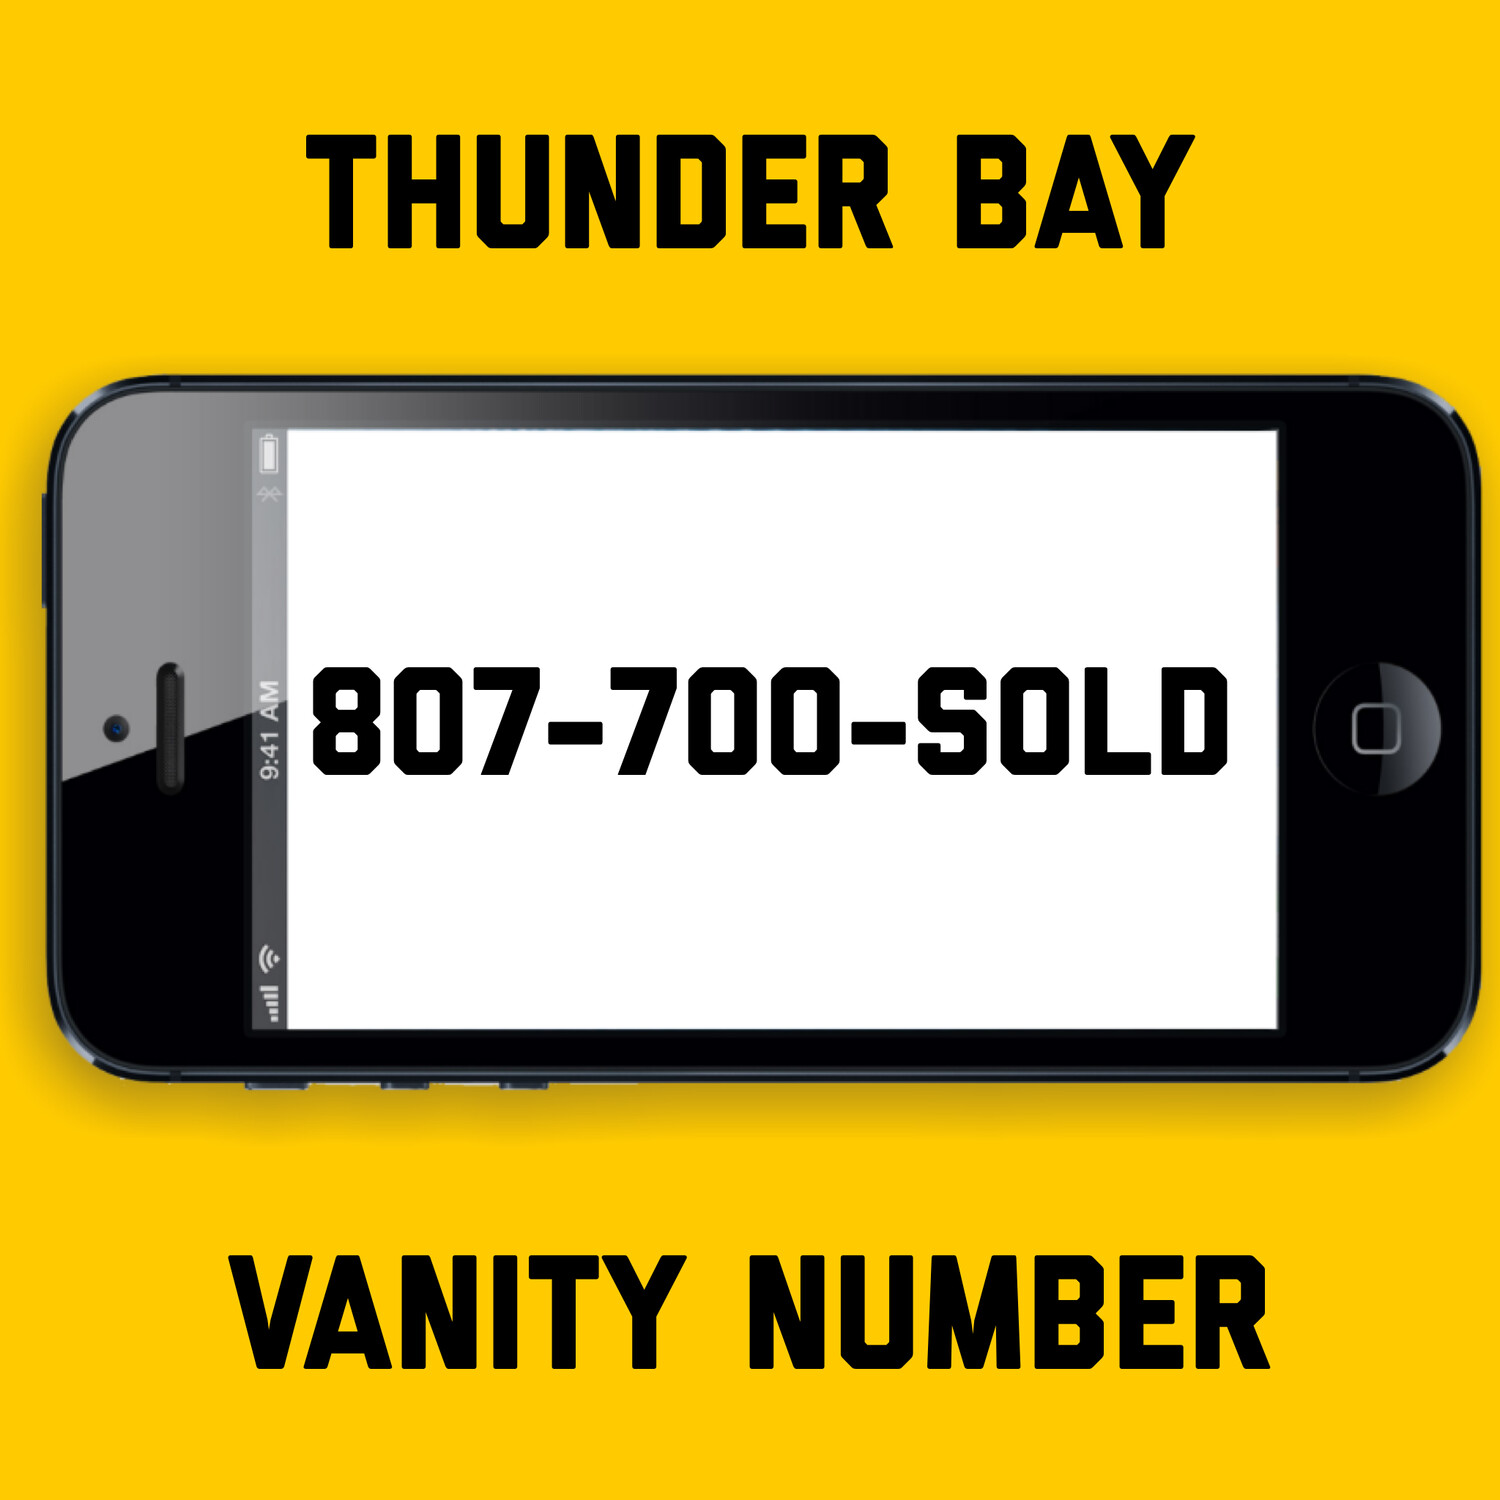 807-700-SOLD VANITY NUMBER THUNDER BAY